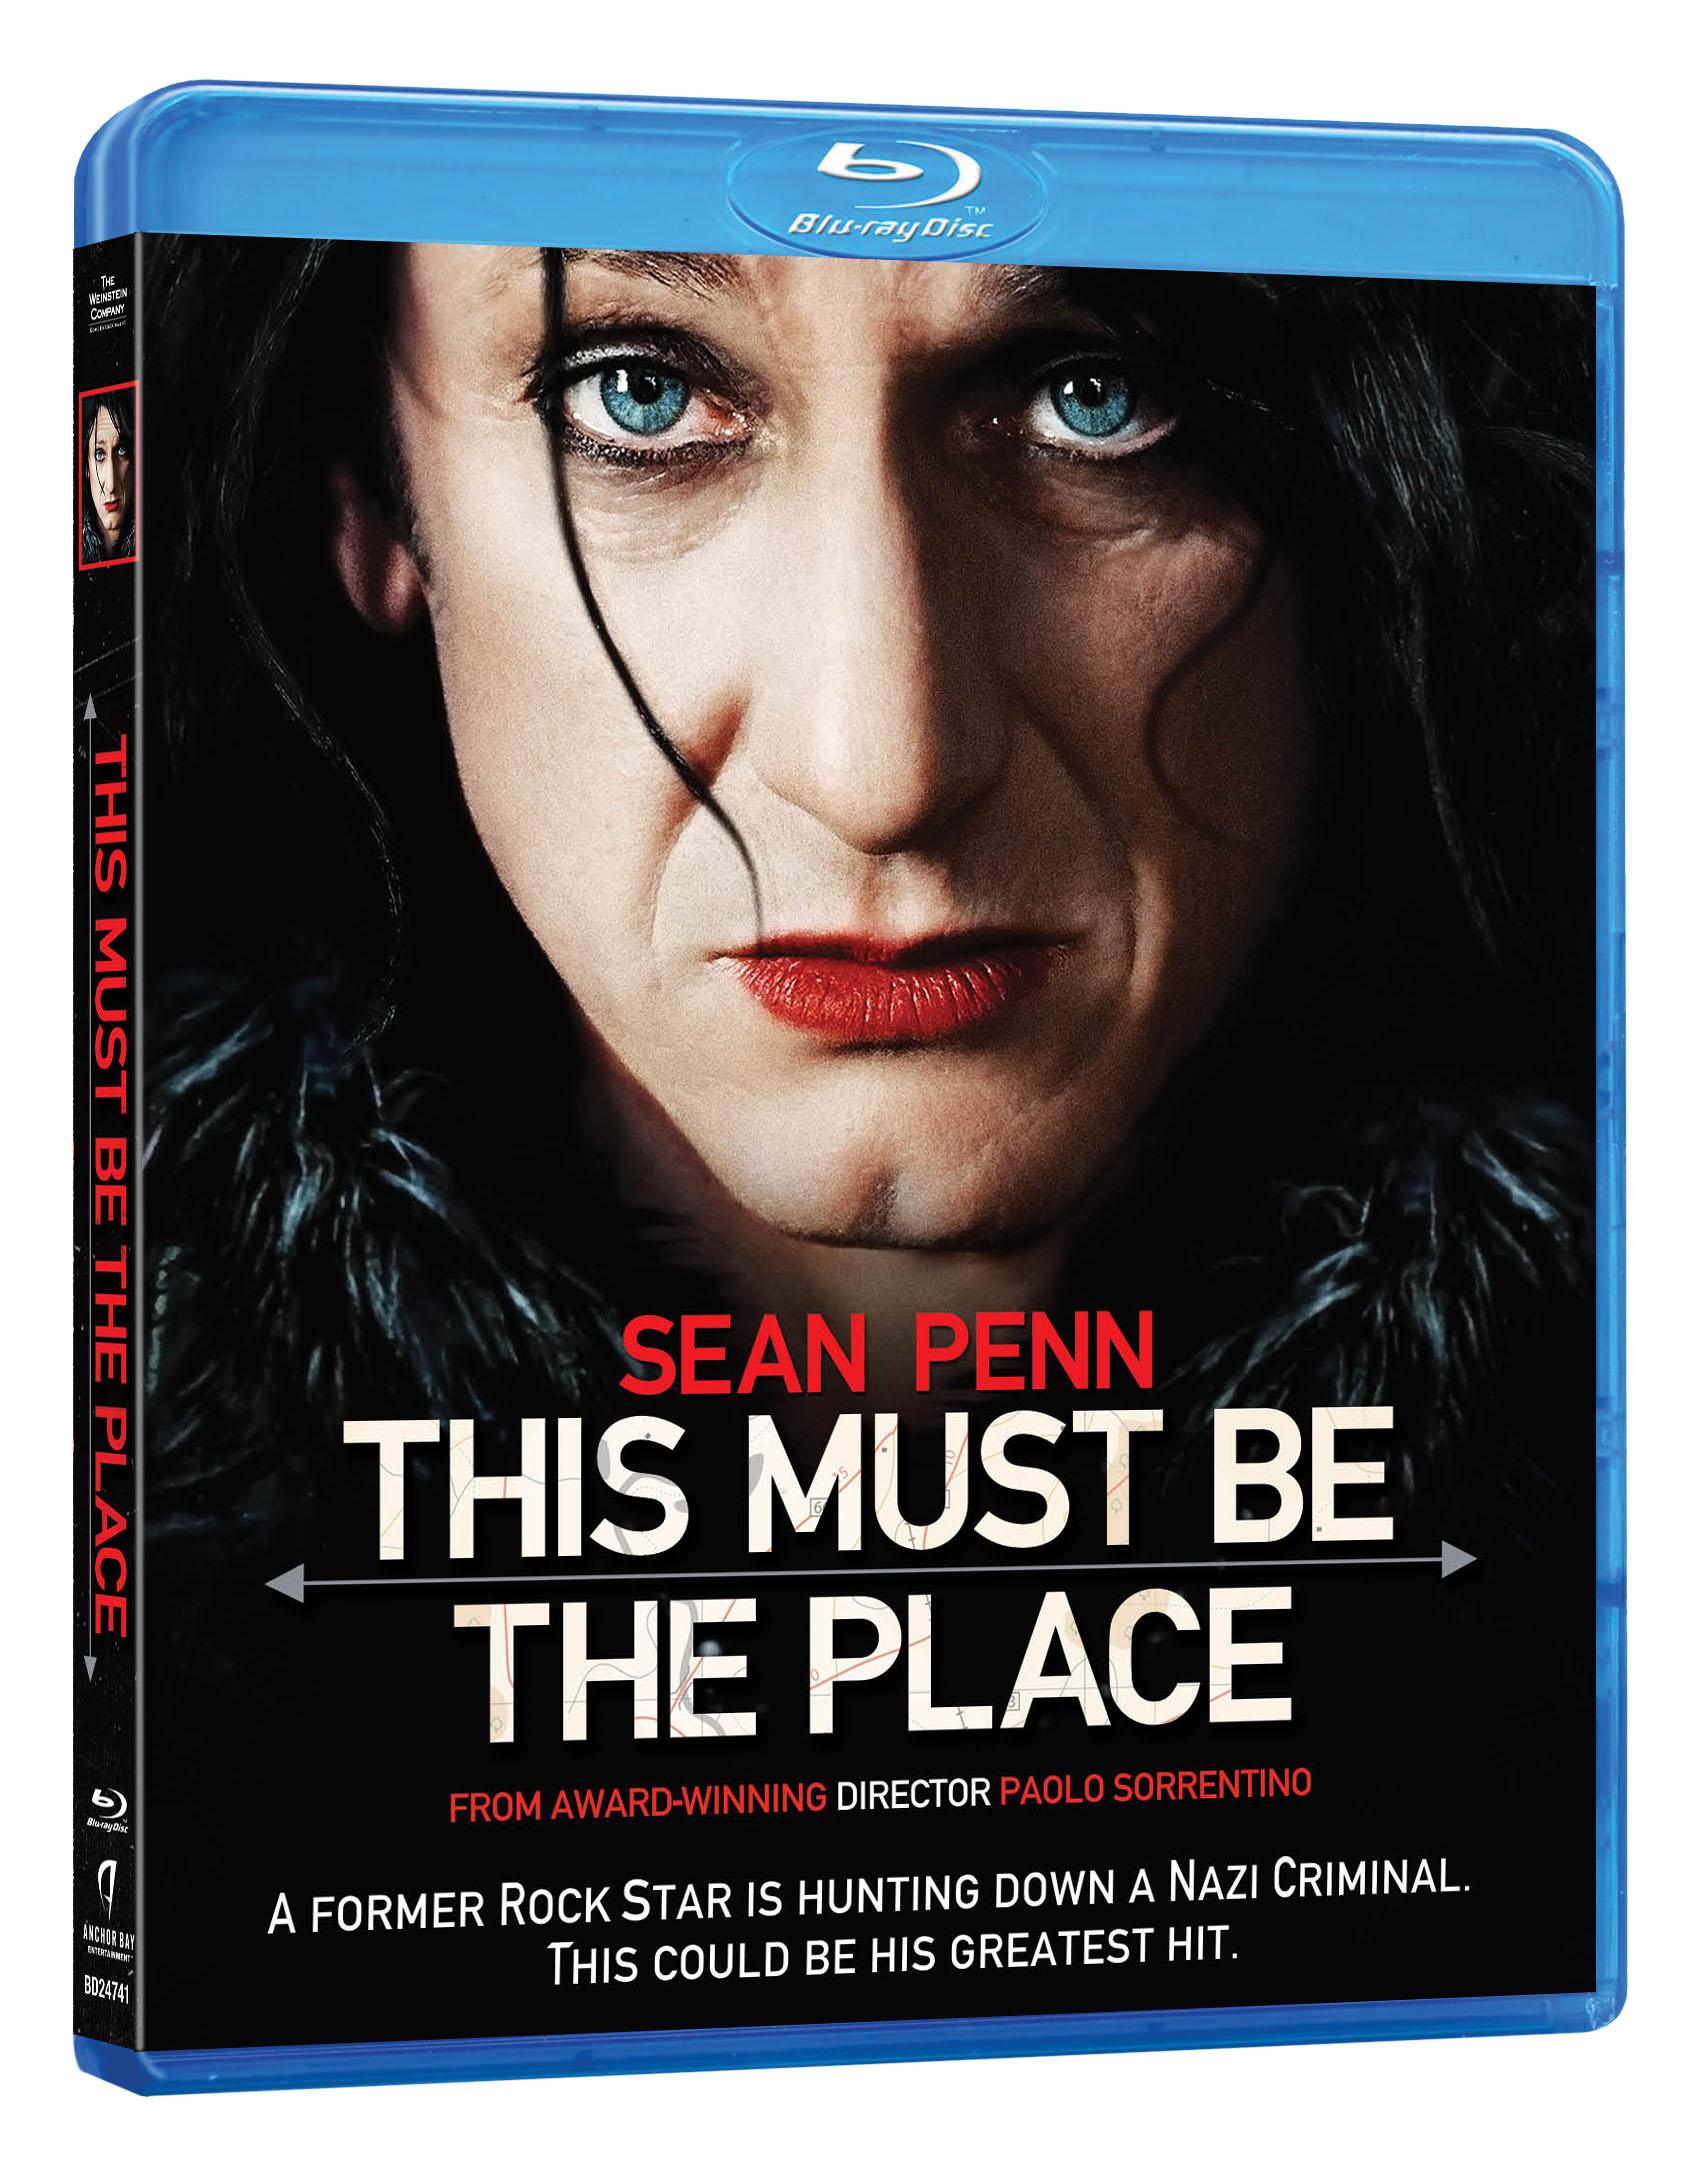 TMBTP bd 3d This Must Be The Place On Blu ray And DVD March 12